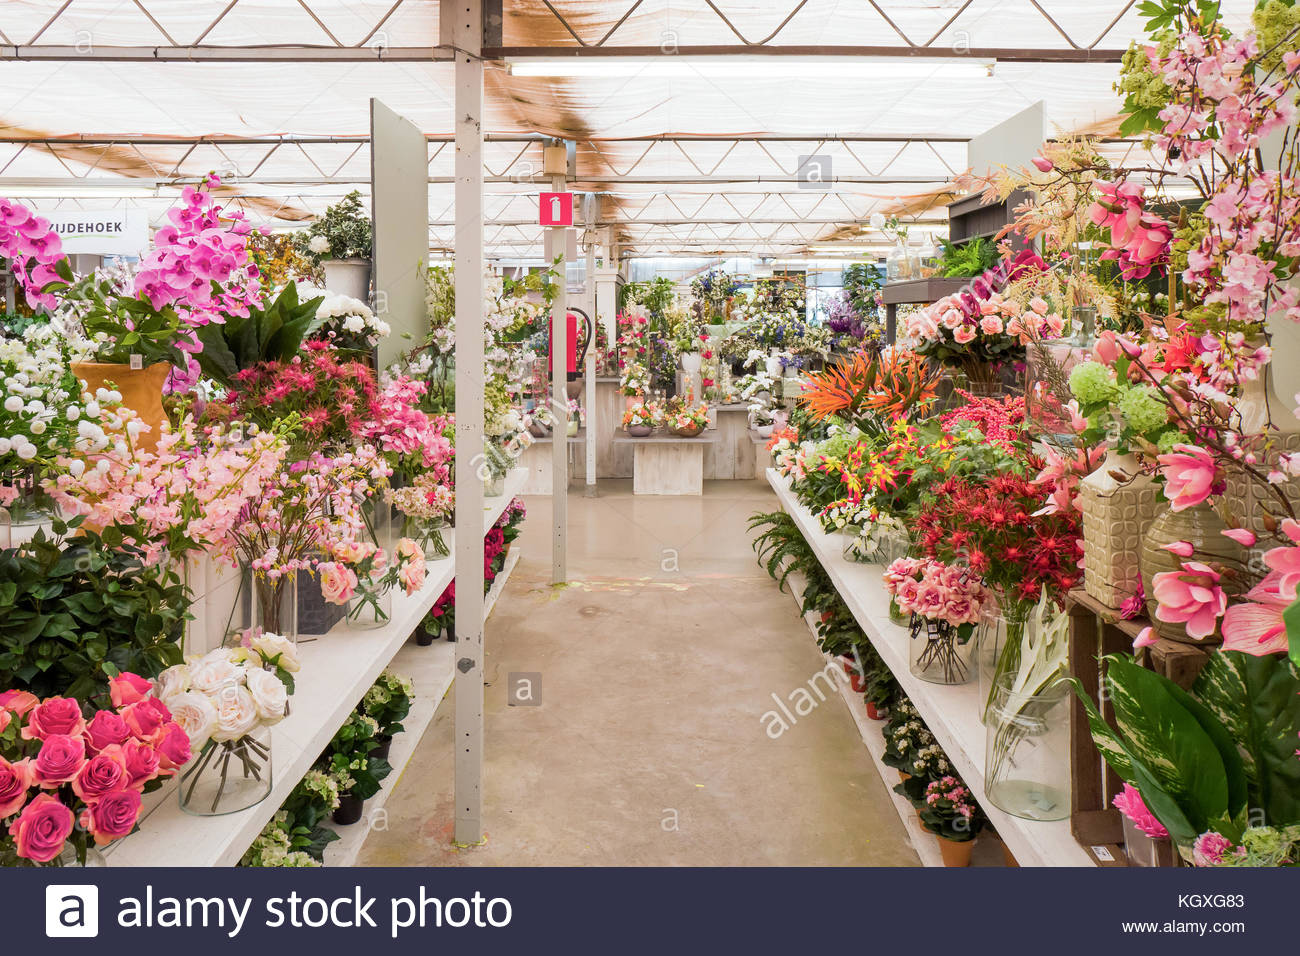 Artificial floral display stock photos artificial floral for Driesprong zoetermeer